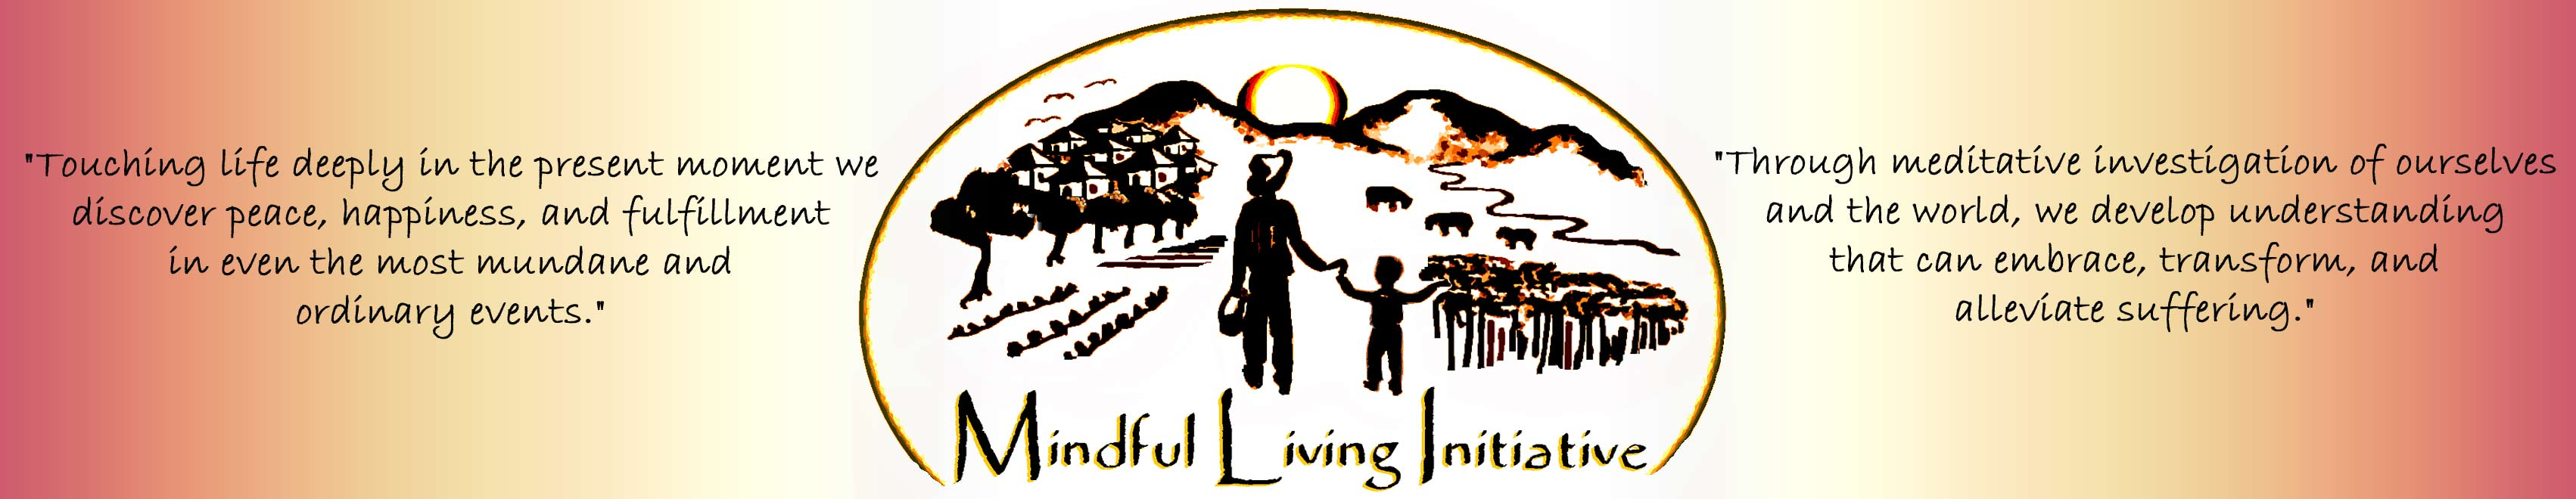 Mindful Living Initiative